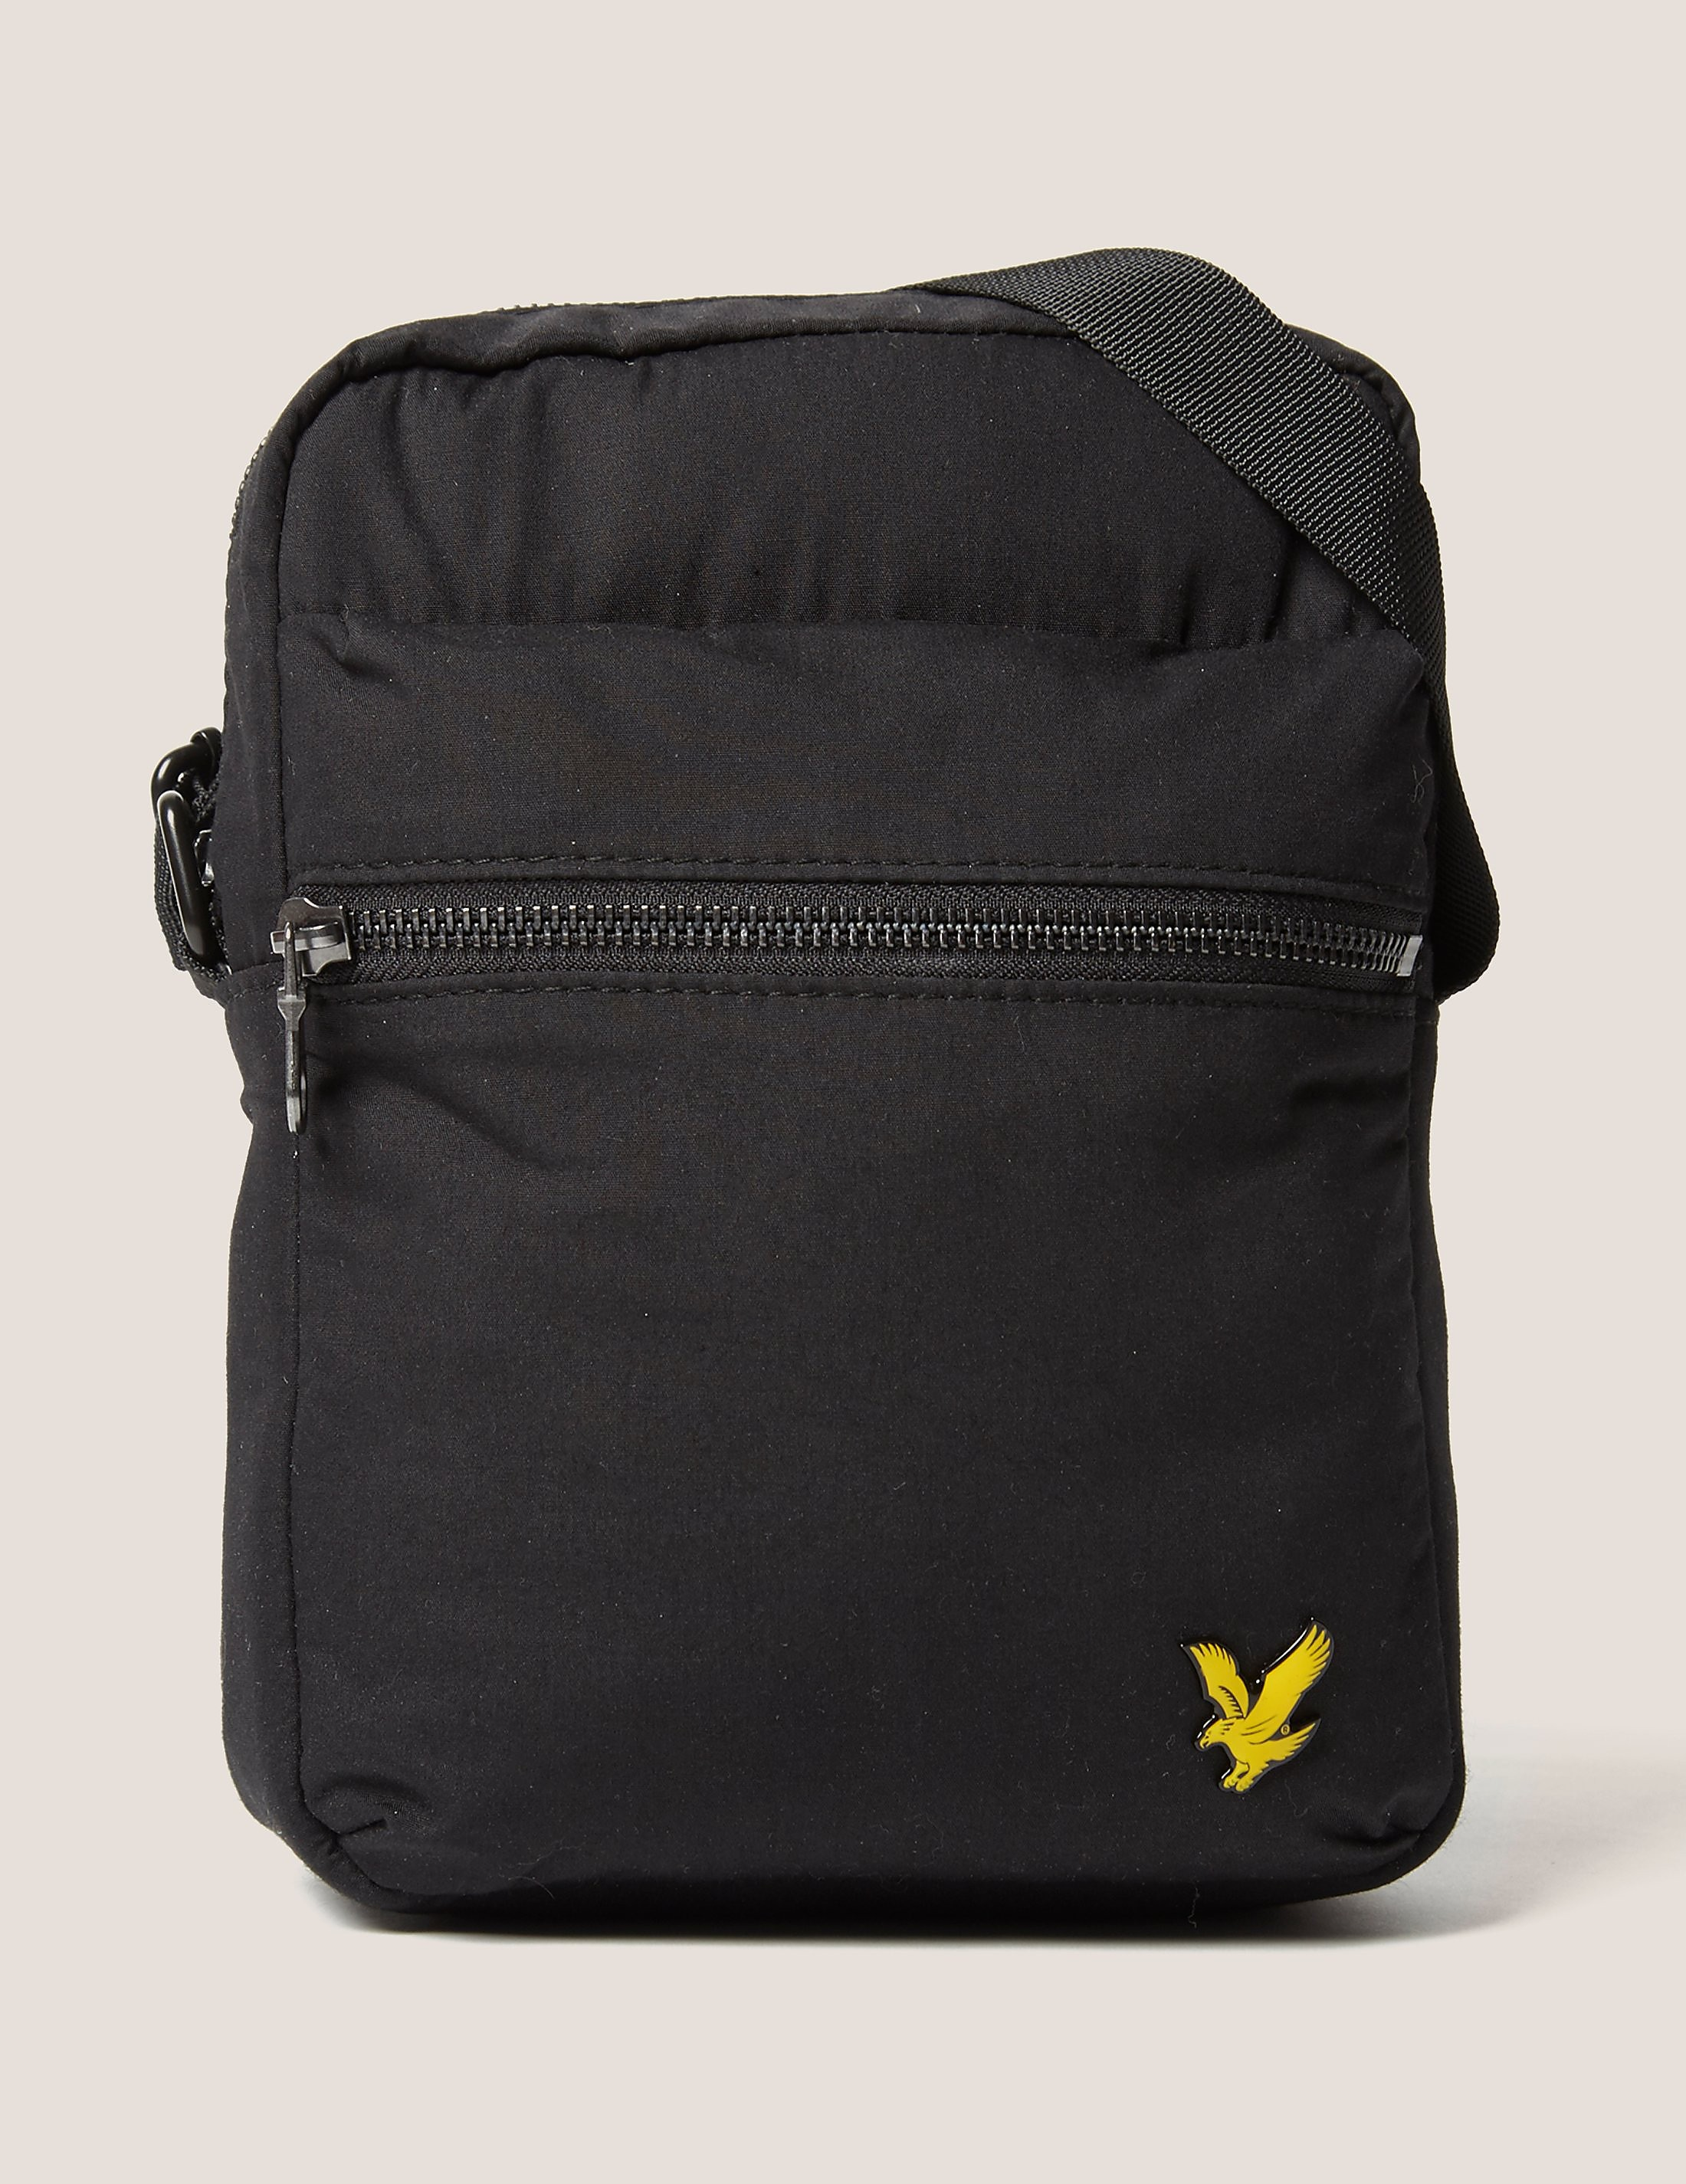 Lyle & Scott Small Items Bag